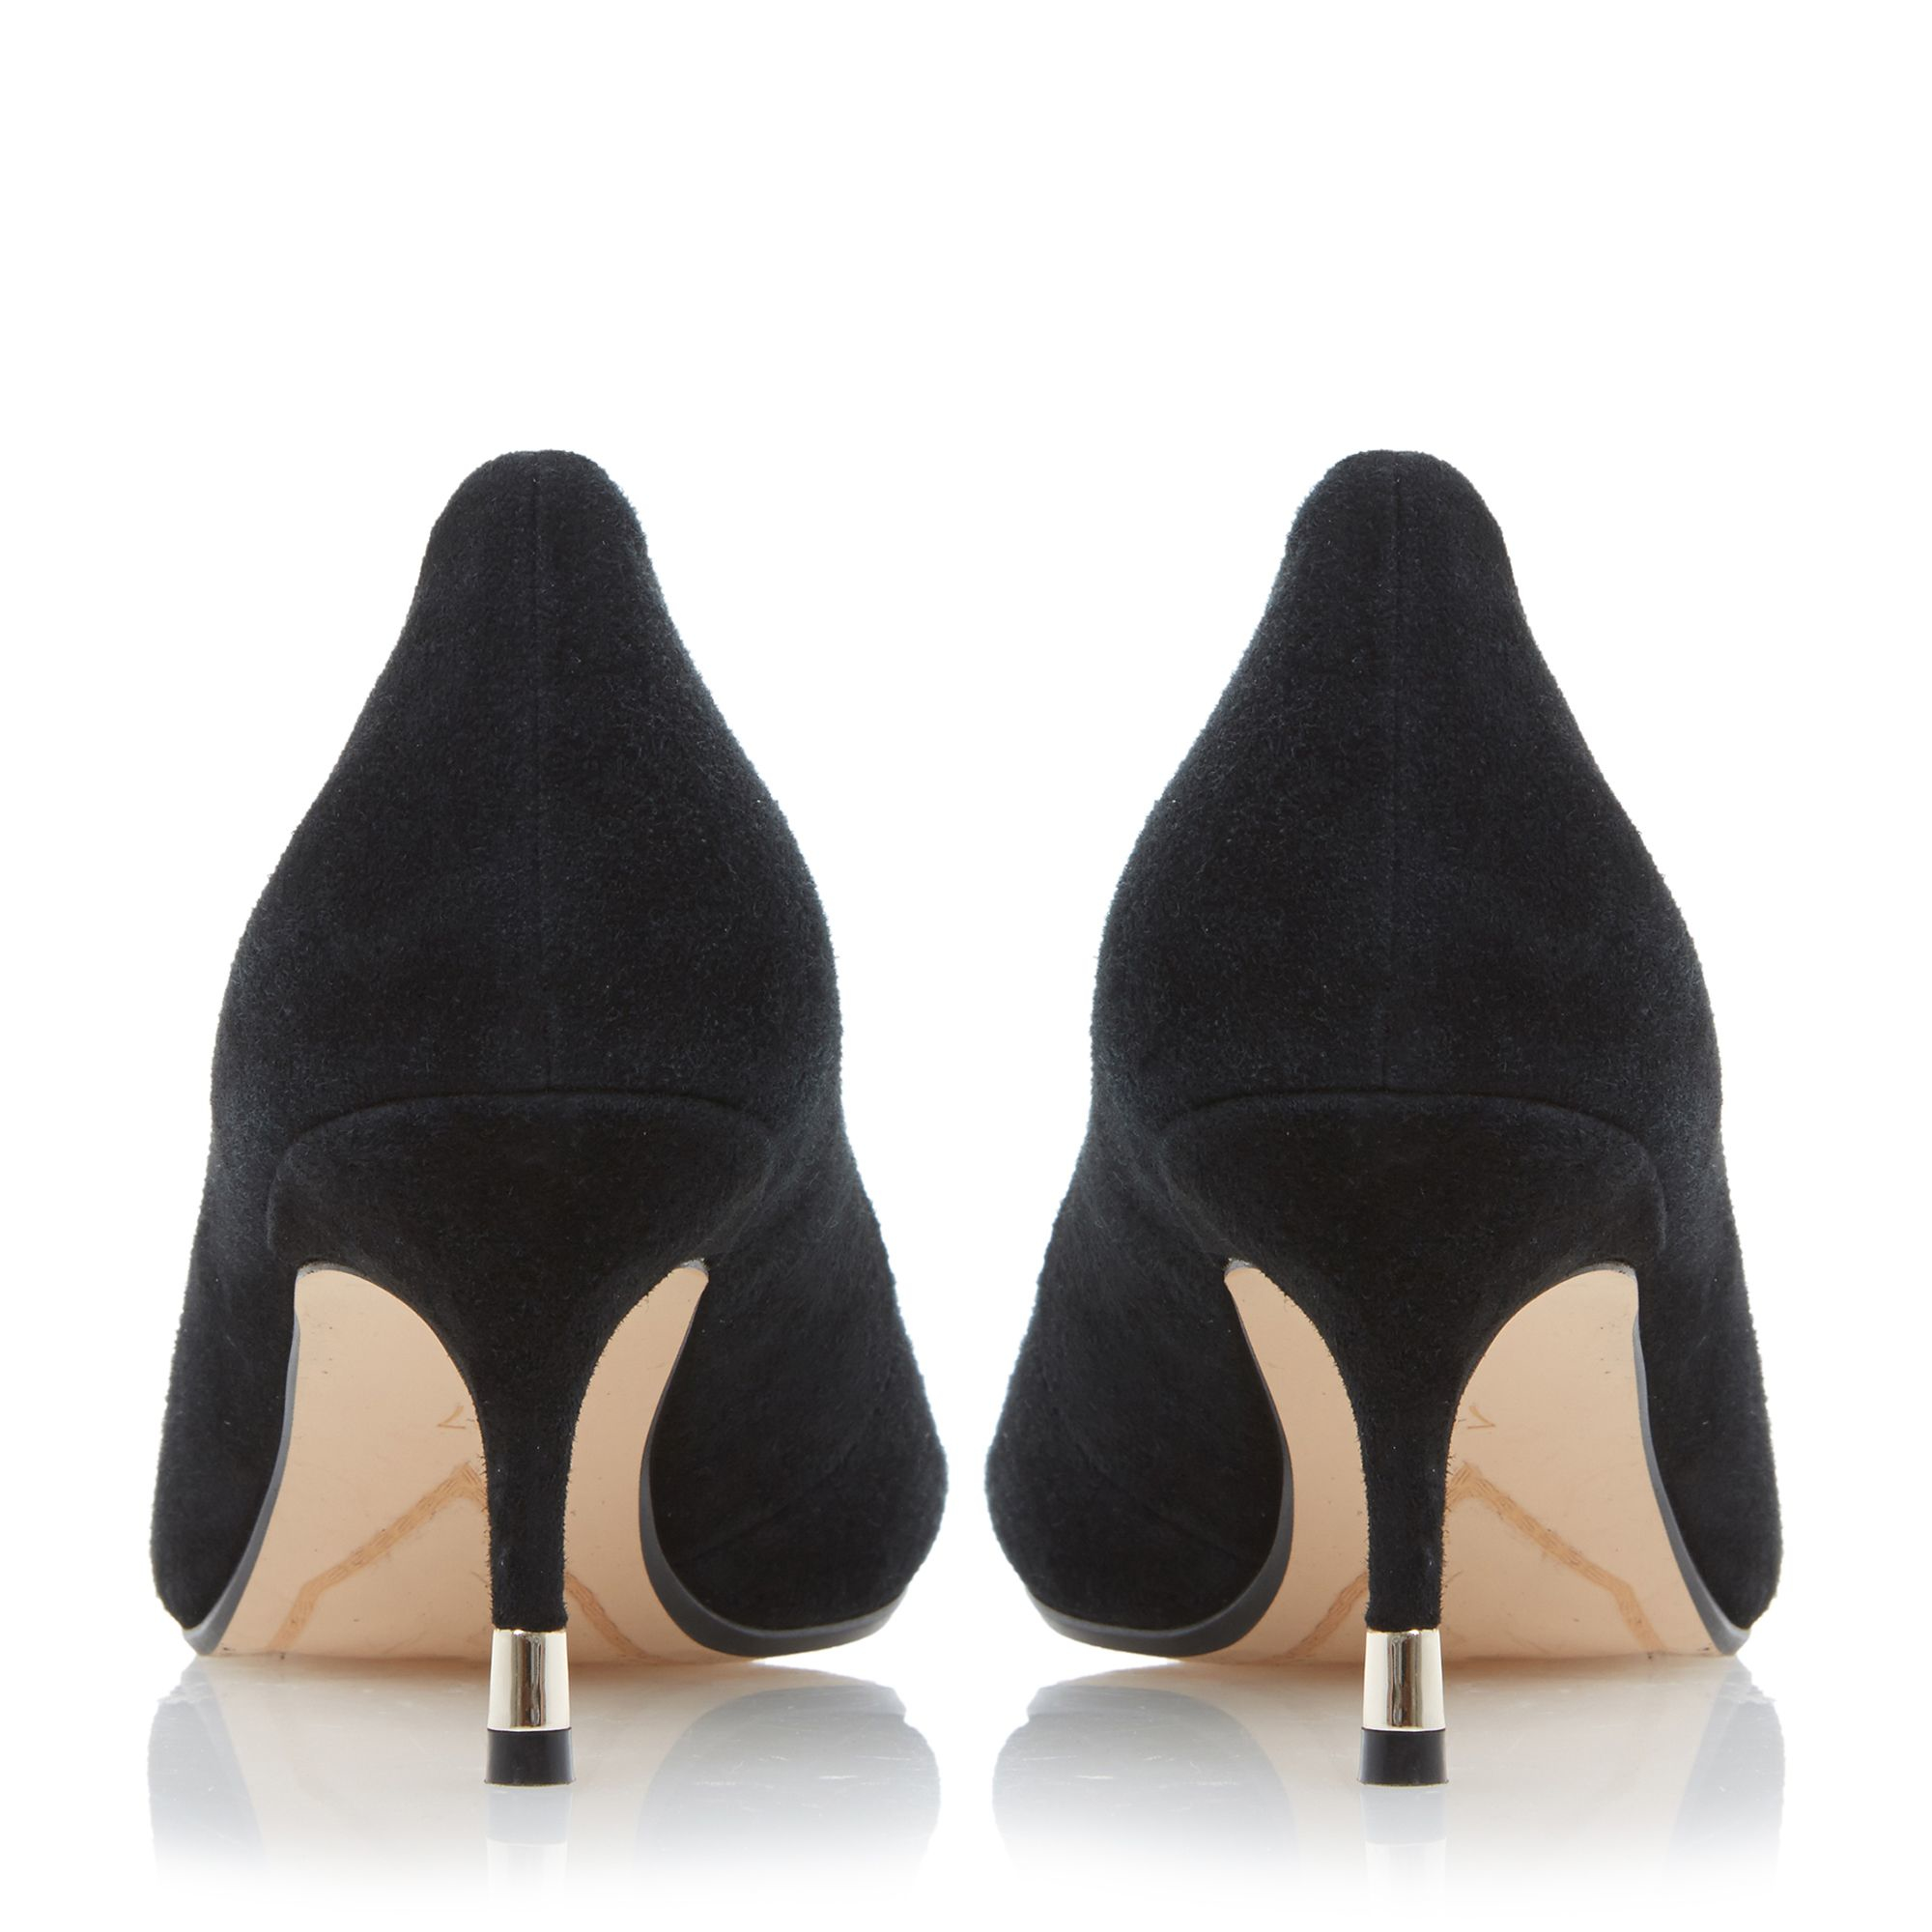 Black Suede Kitten Heel Court Shoe - The Cutest Kittens